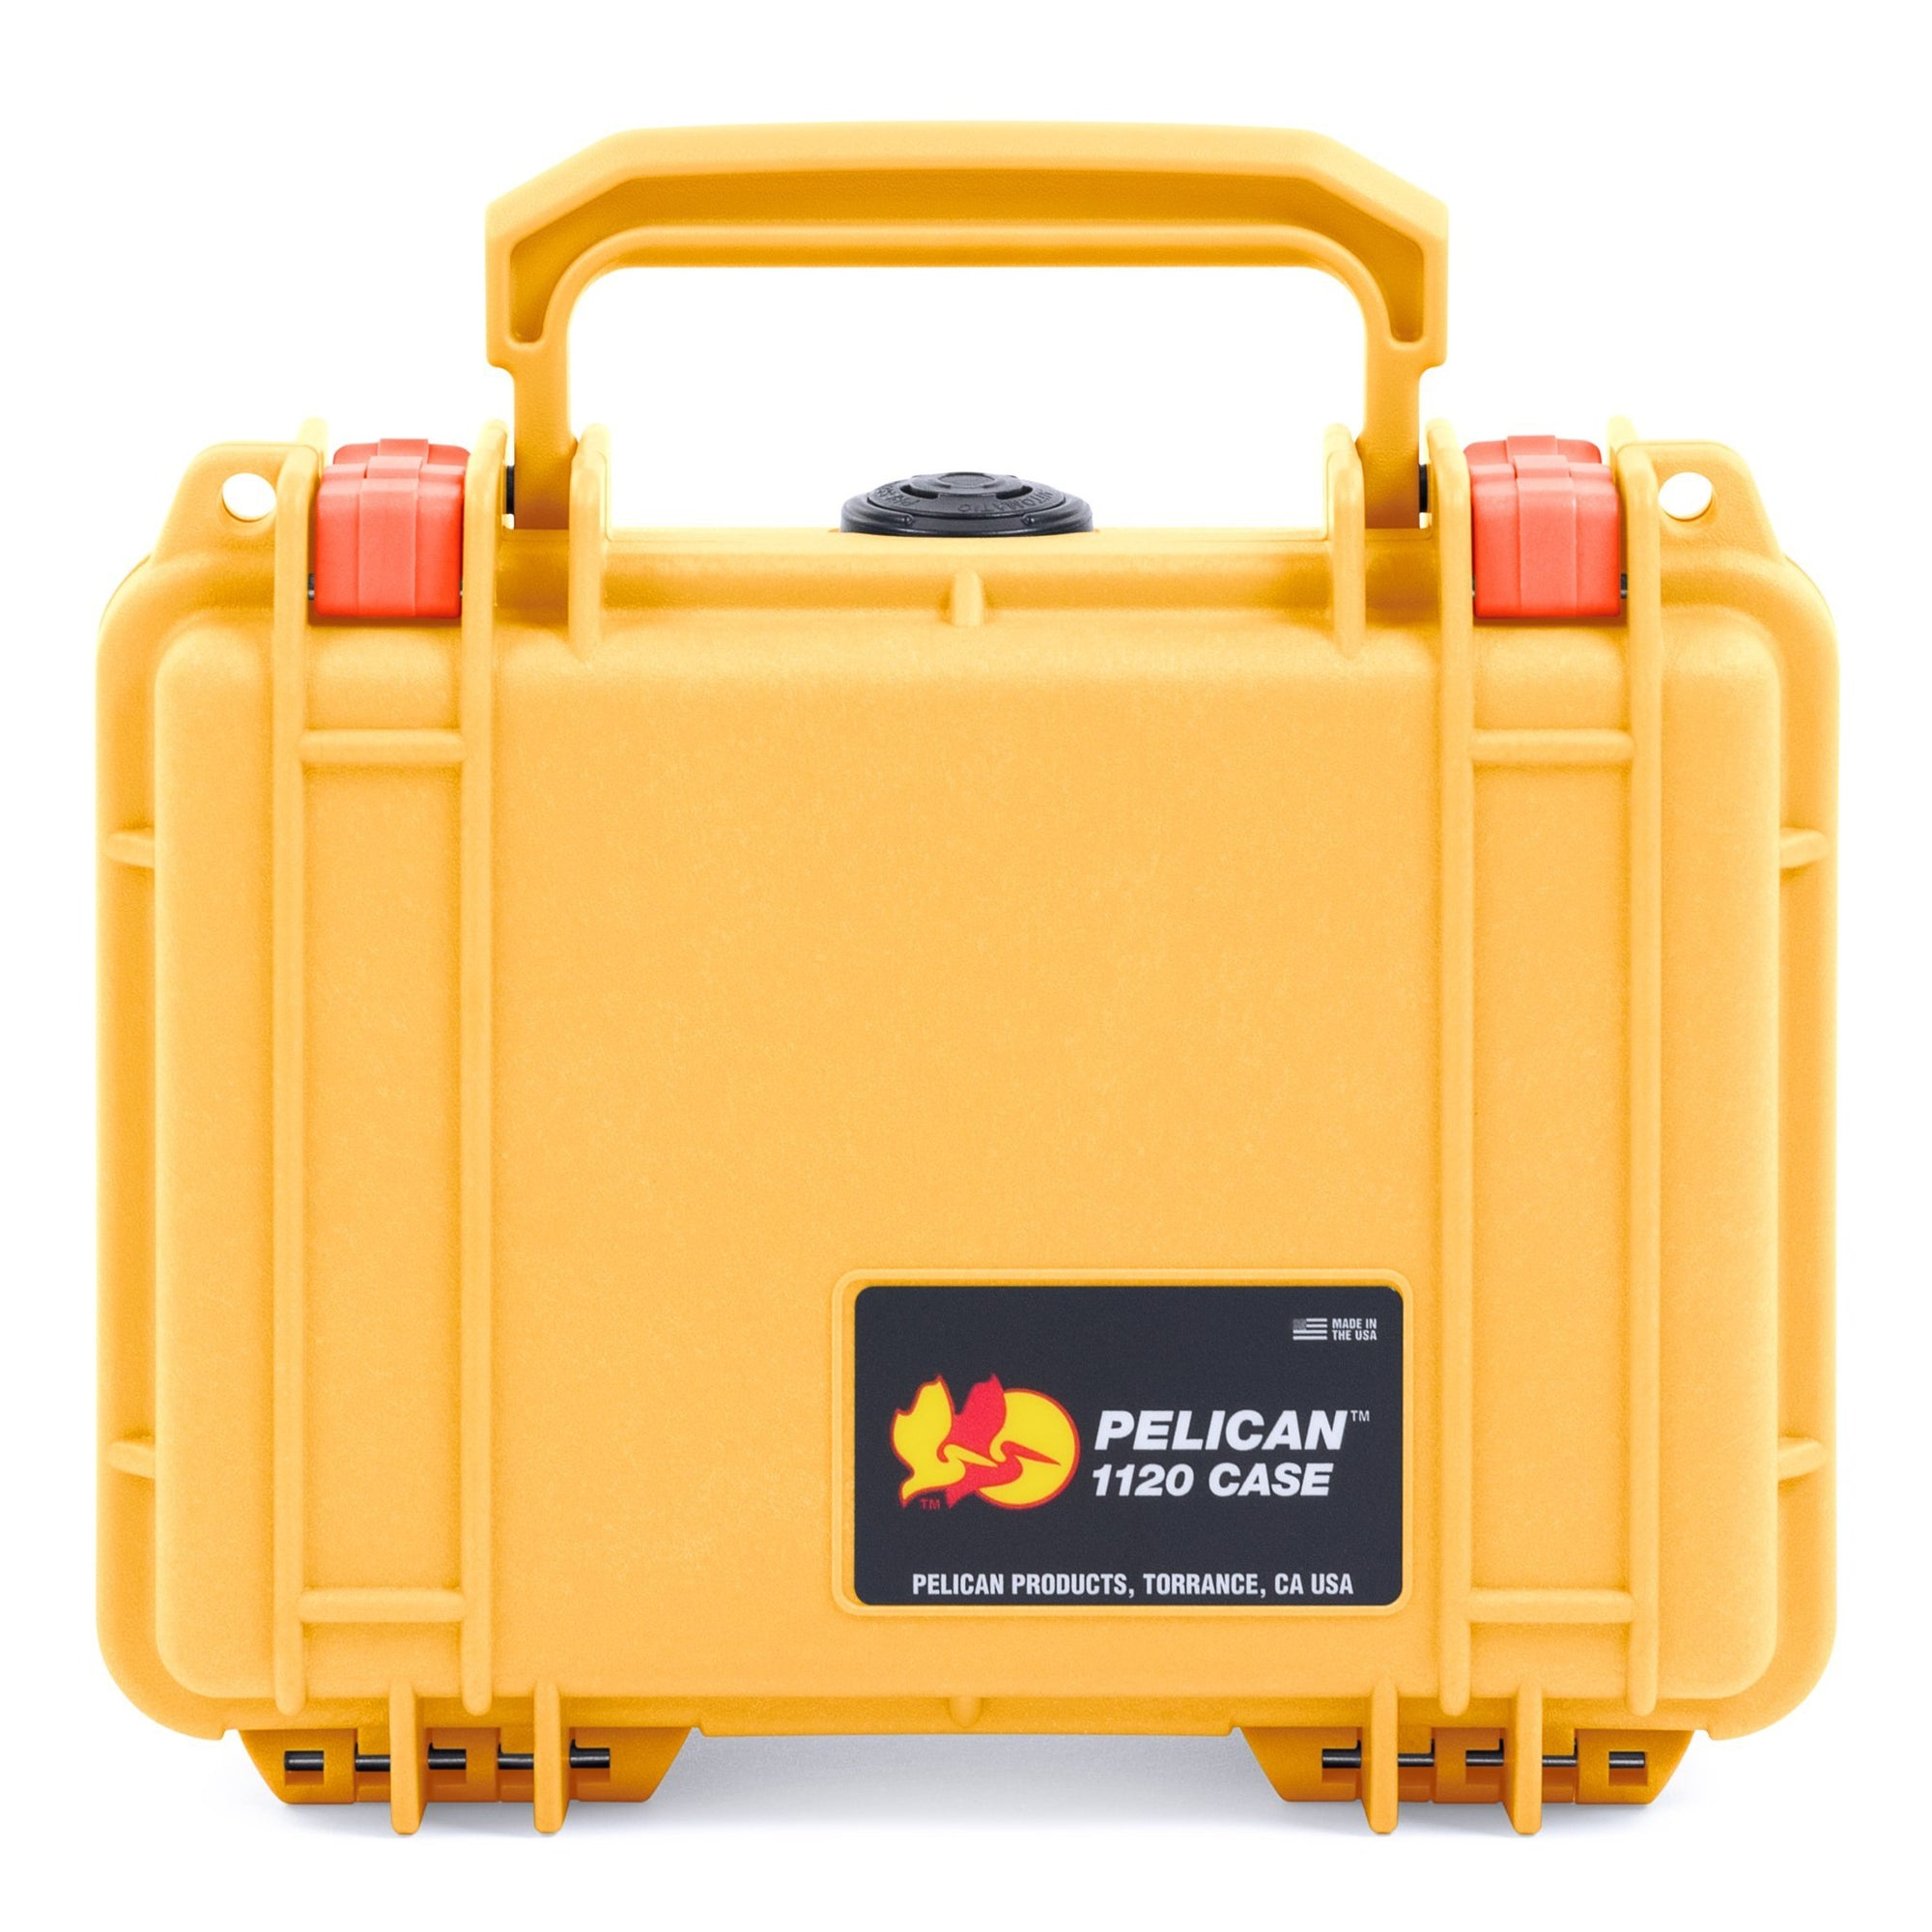 Pelican 1120 Case, Yellow with Orange Latches - Pelican Color Case